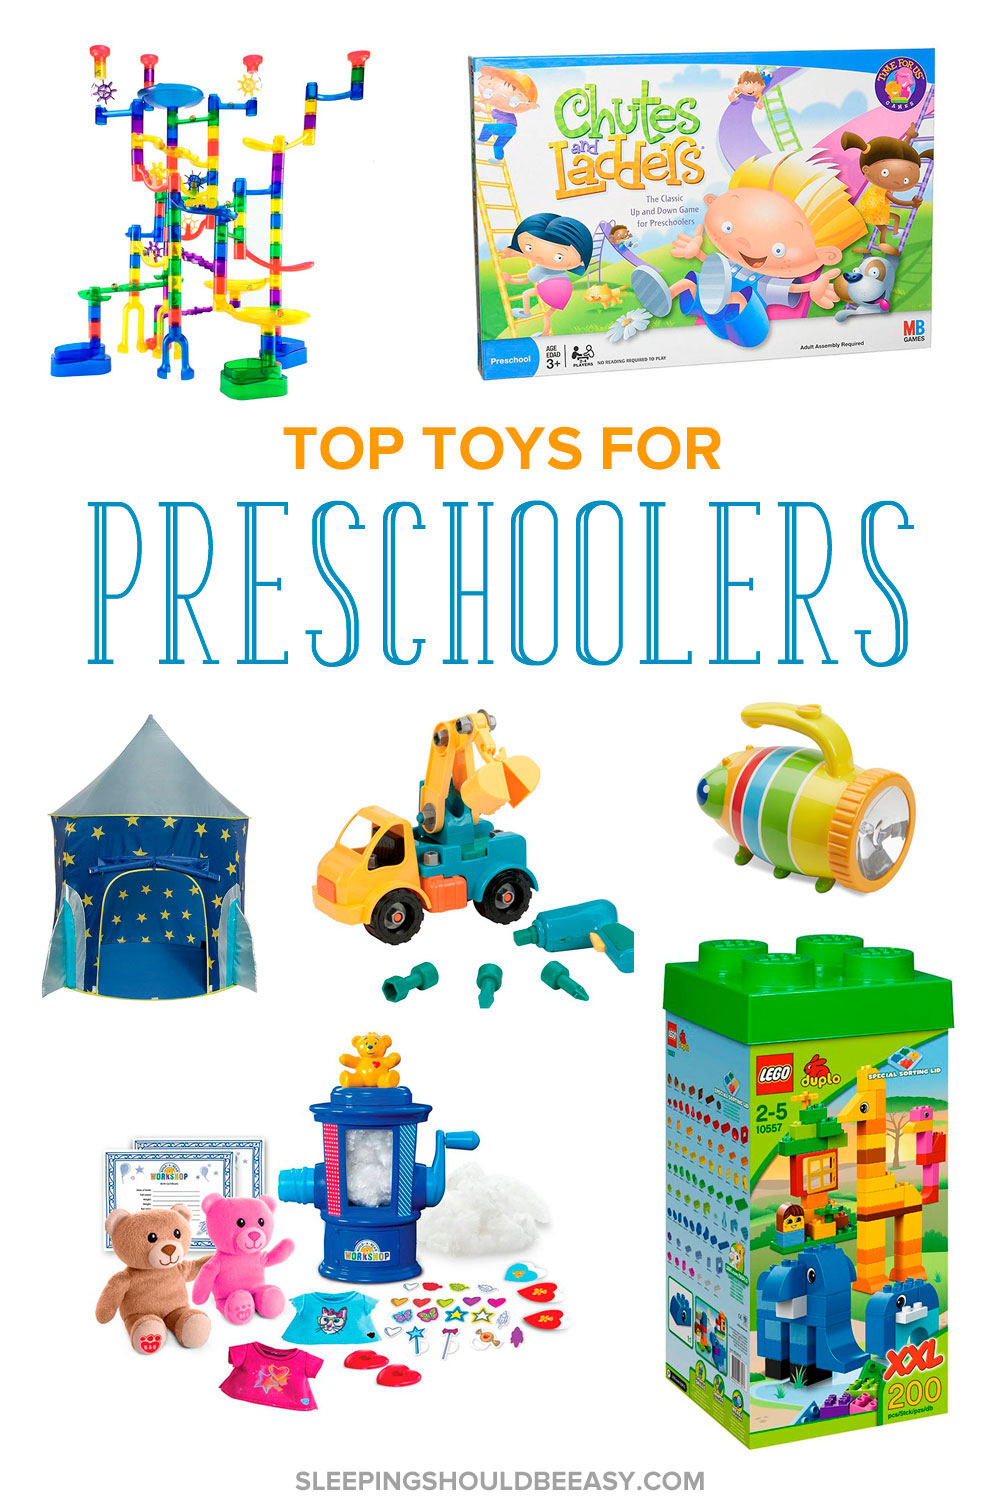 Looking for gifts for two- to four-year-olds? Check out these top toys for preschoolers. Unique, enjoyable and fun to give on holidays or birthdays!